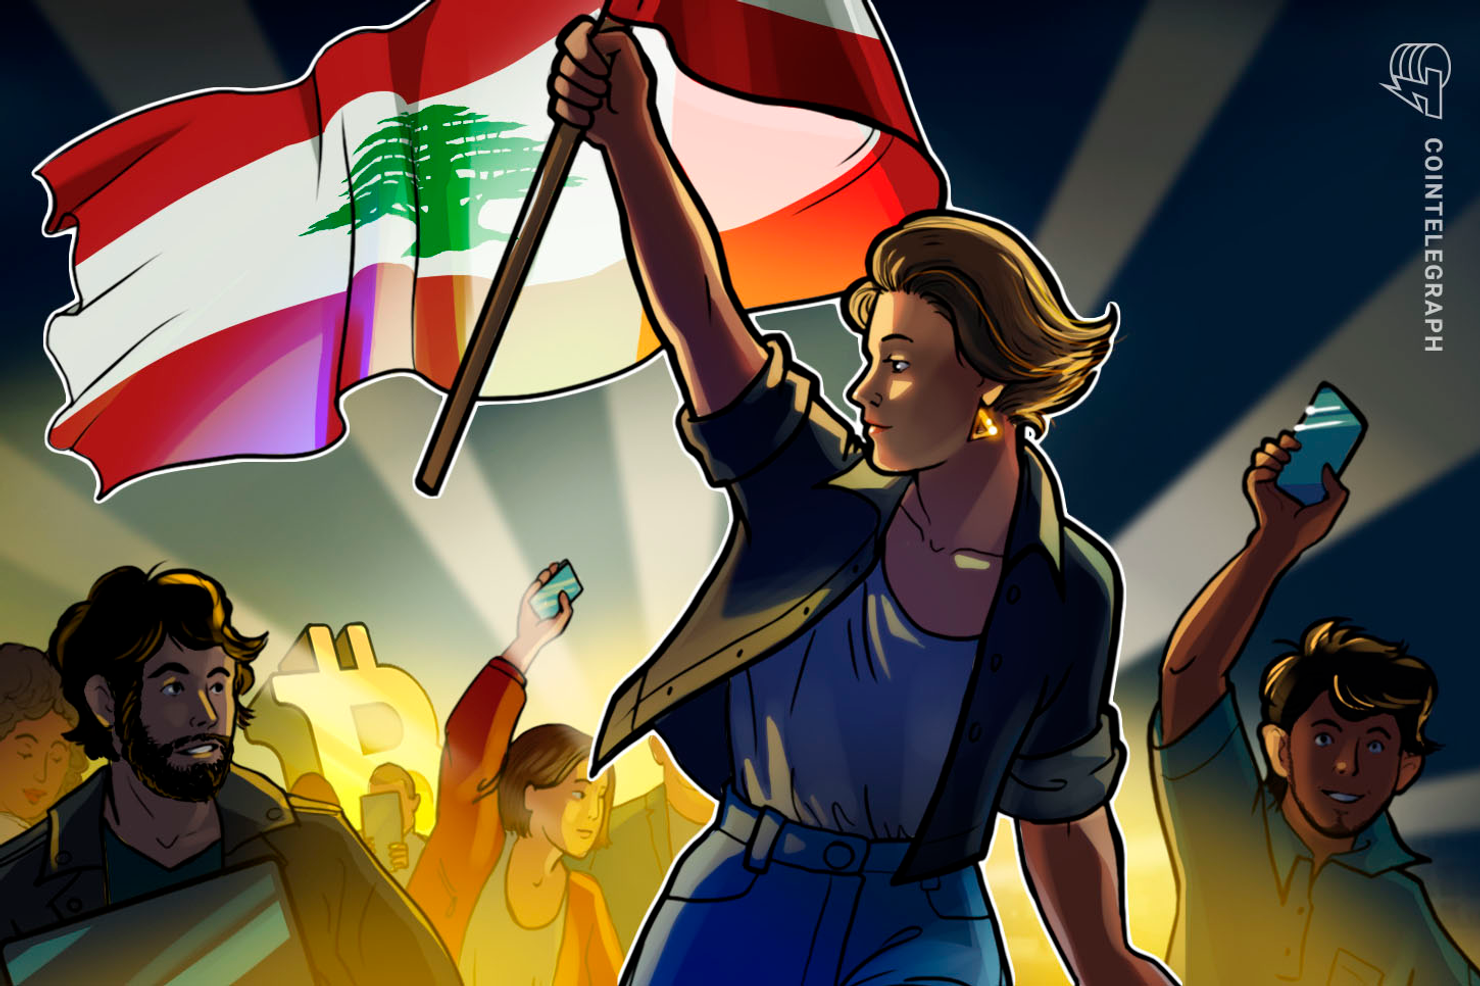 Lebanon Banks' Shutdown Is 'Most Potent Case' for Crypto: Nassim Taleb